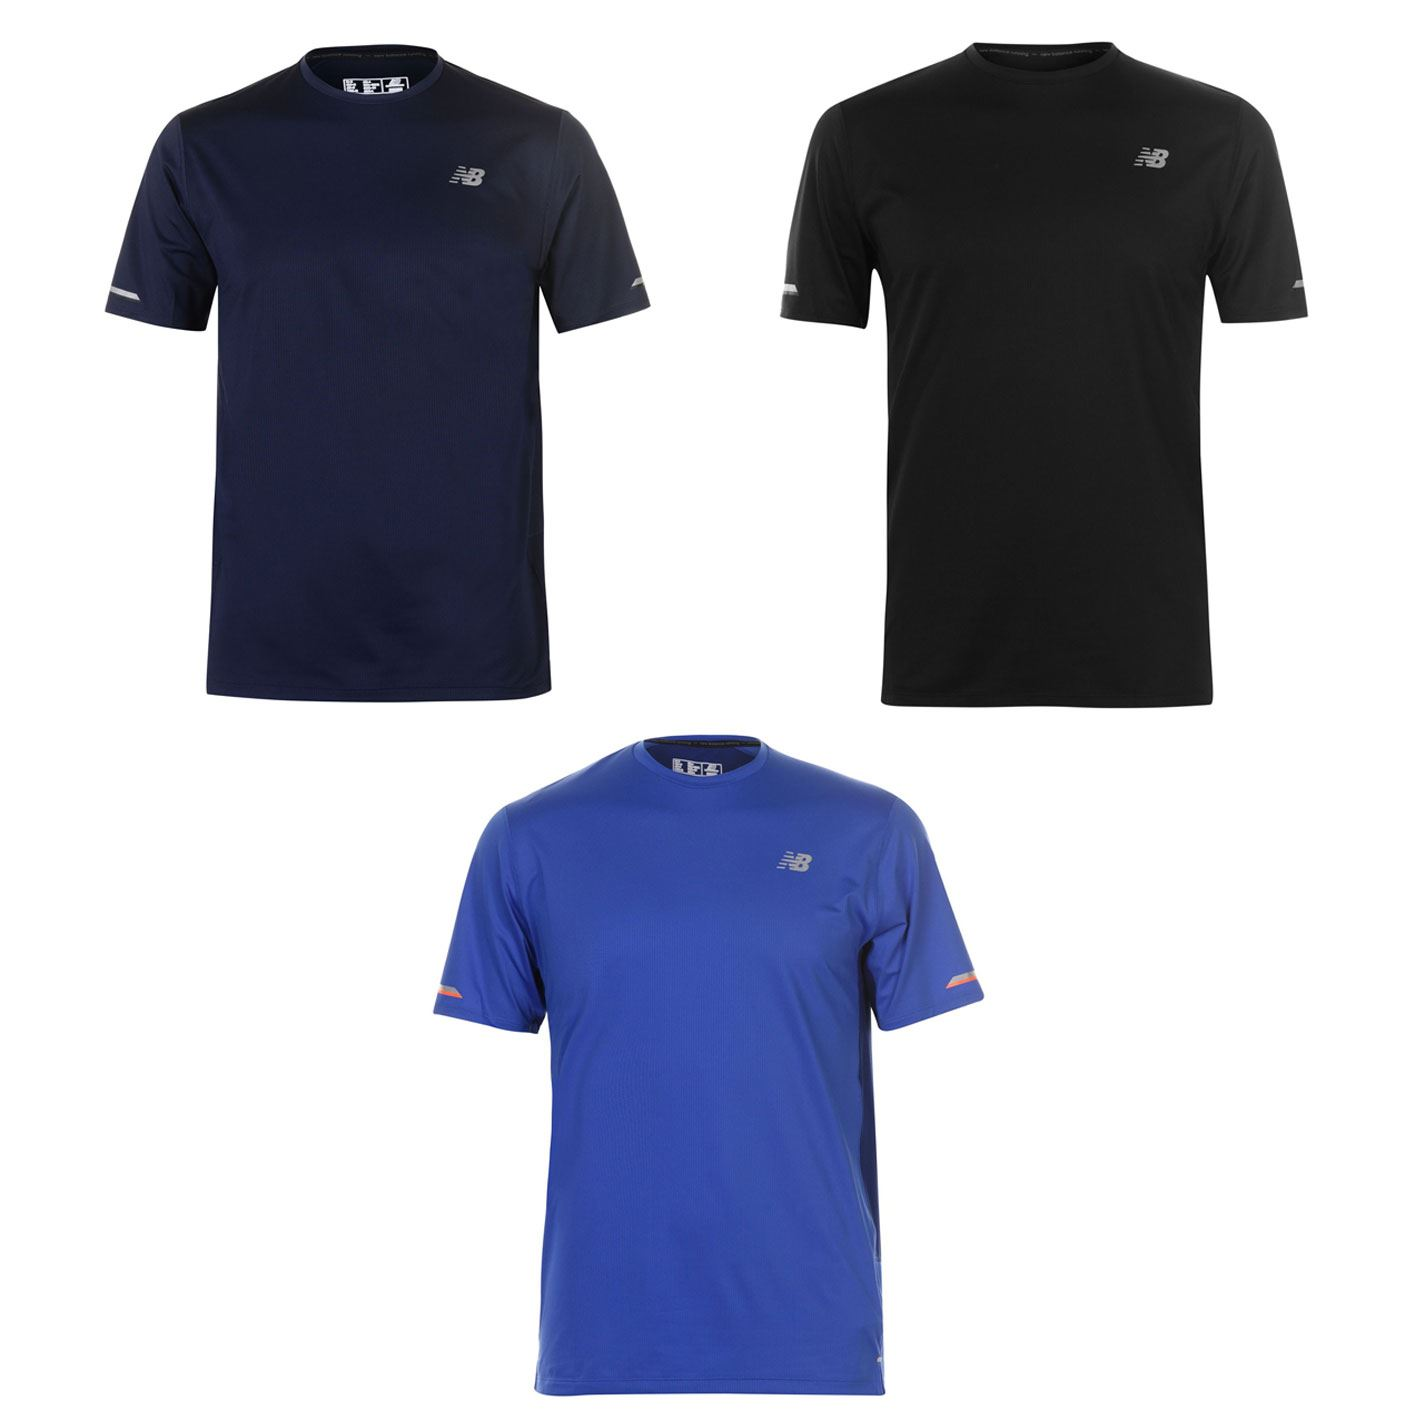 0c7ca977c97cb Details about New Balance Ice Running Top Mens Running Fitness Gym Workout T -Shirt Tee